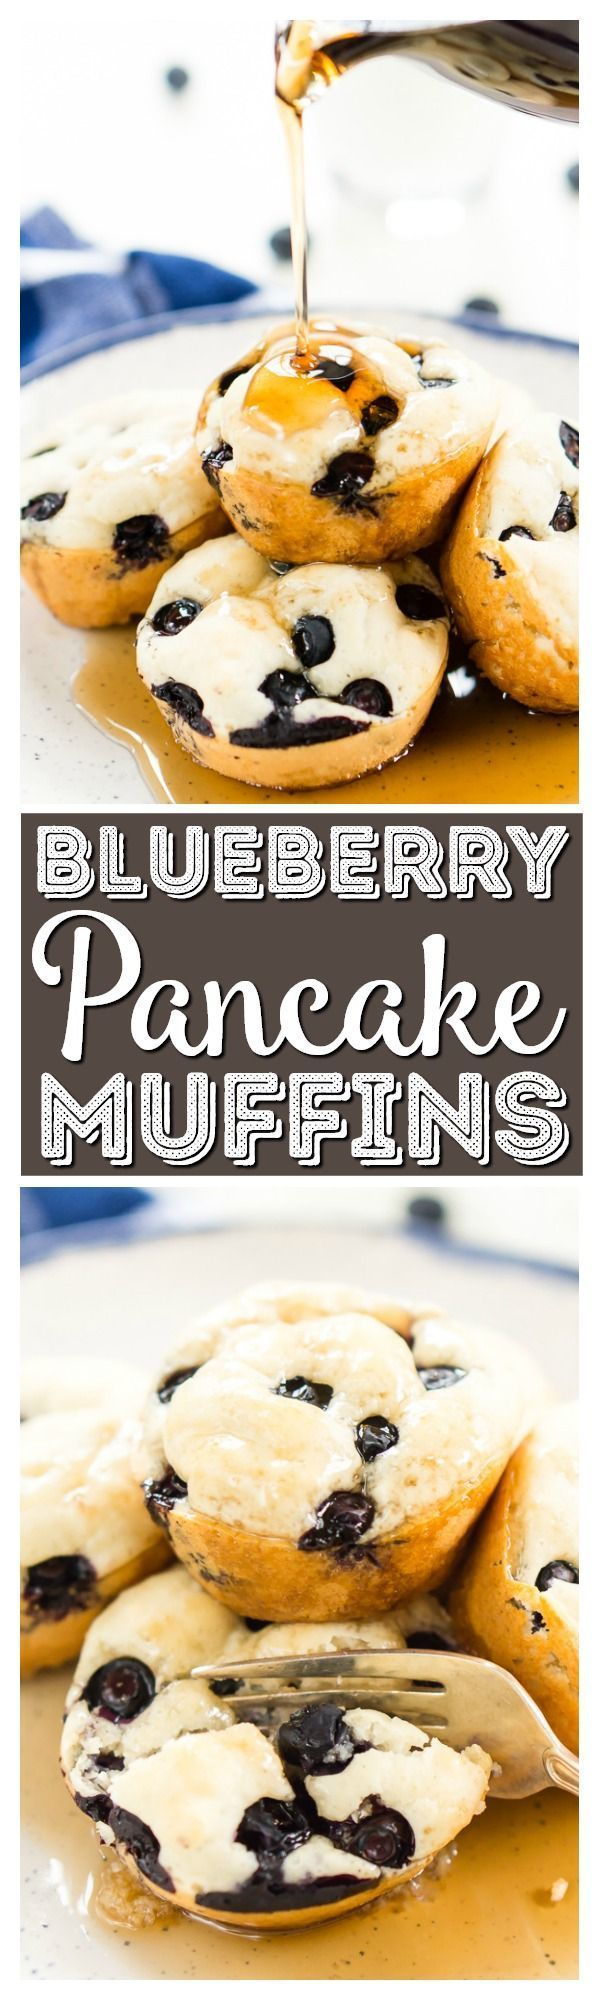 Blueberry Pancake Muffins are a simple, portable, 4-ingredient breakfast or snack both you and your kids will love. Perfect for those crazy school mornings or weekends on the go or you can enjoy them at home with butter and maple syrup! via @sugarandsoulco